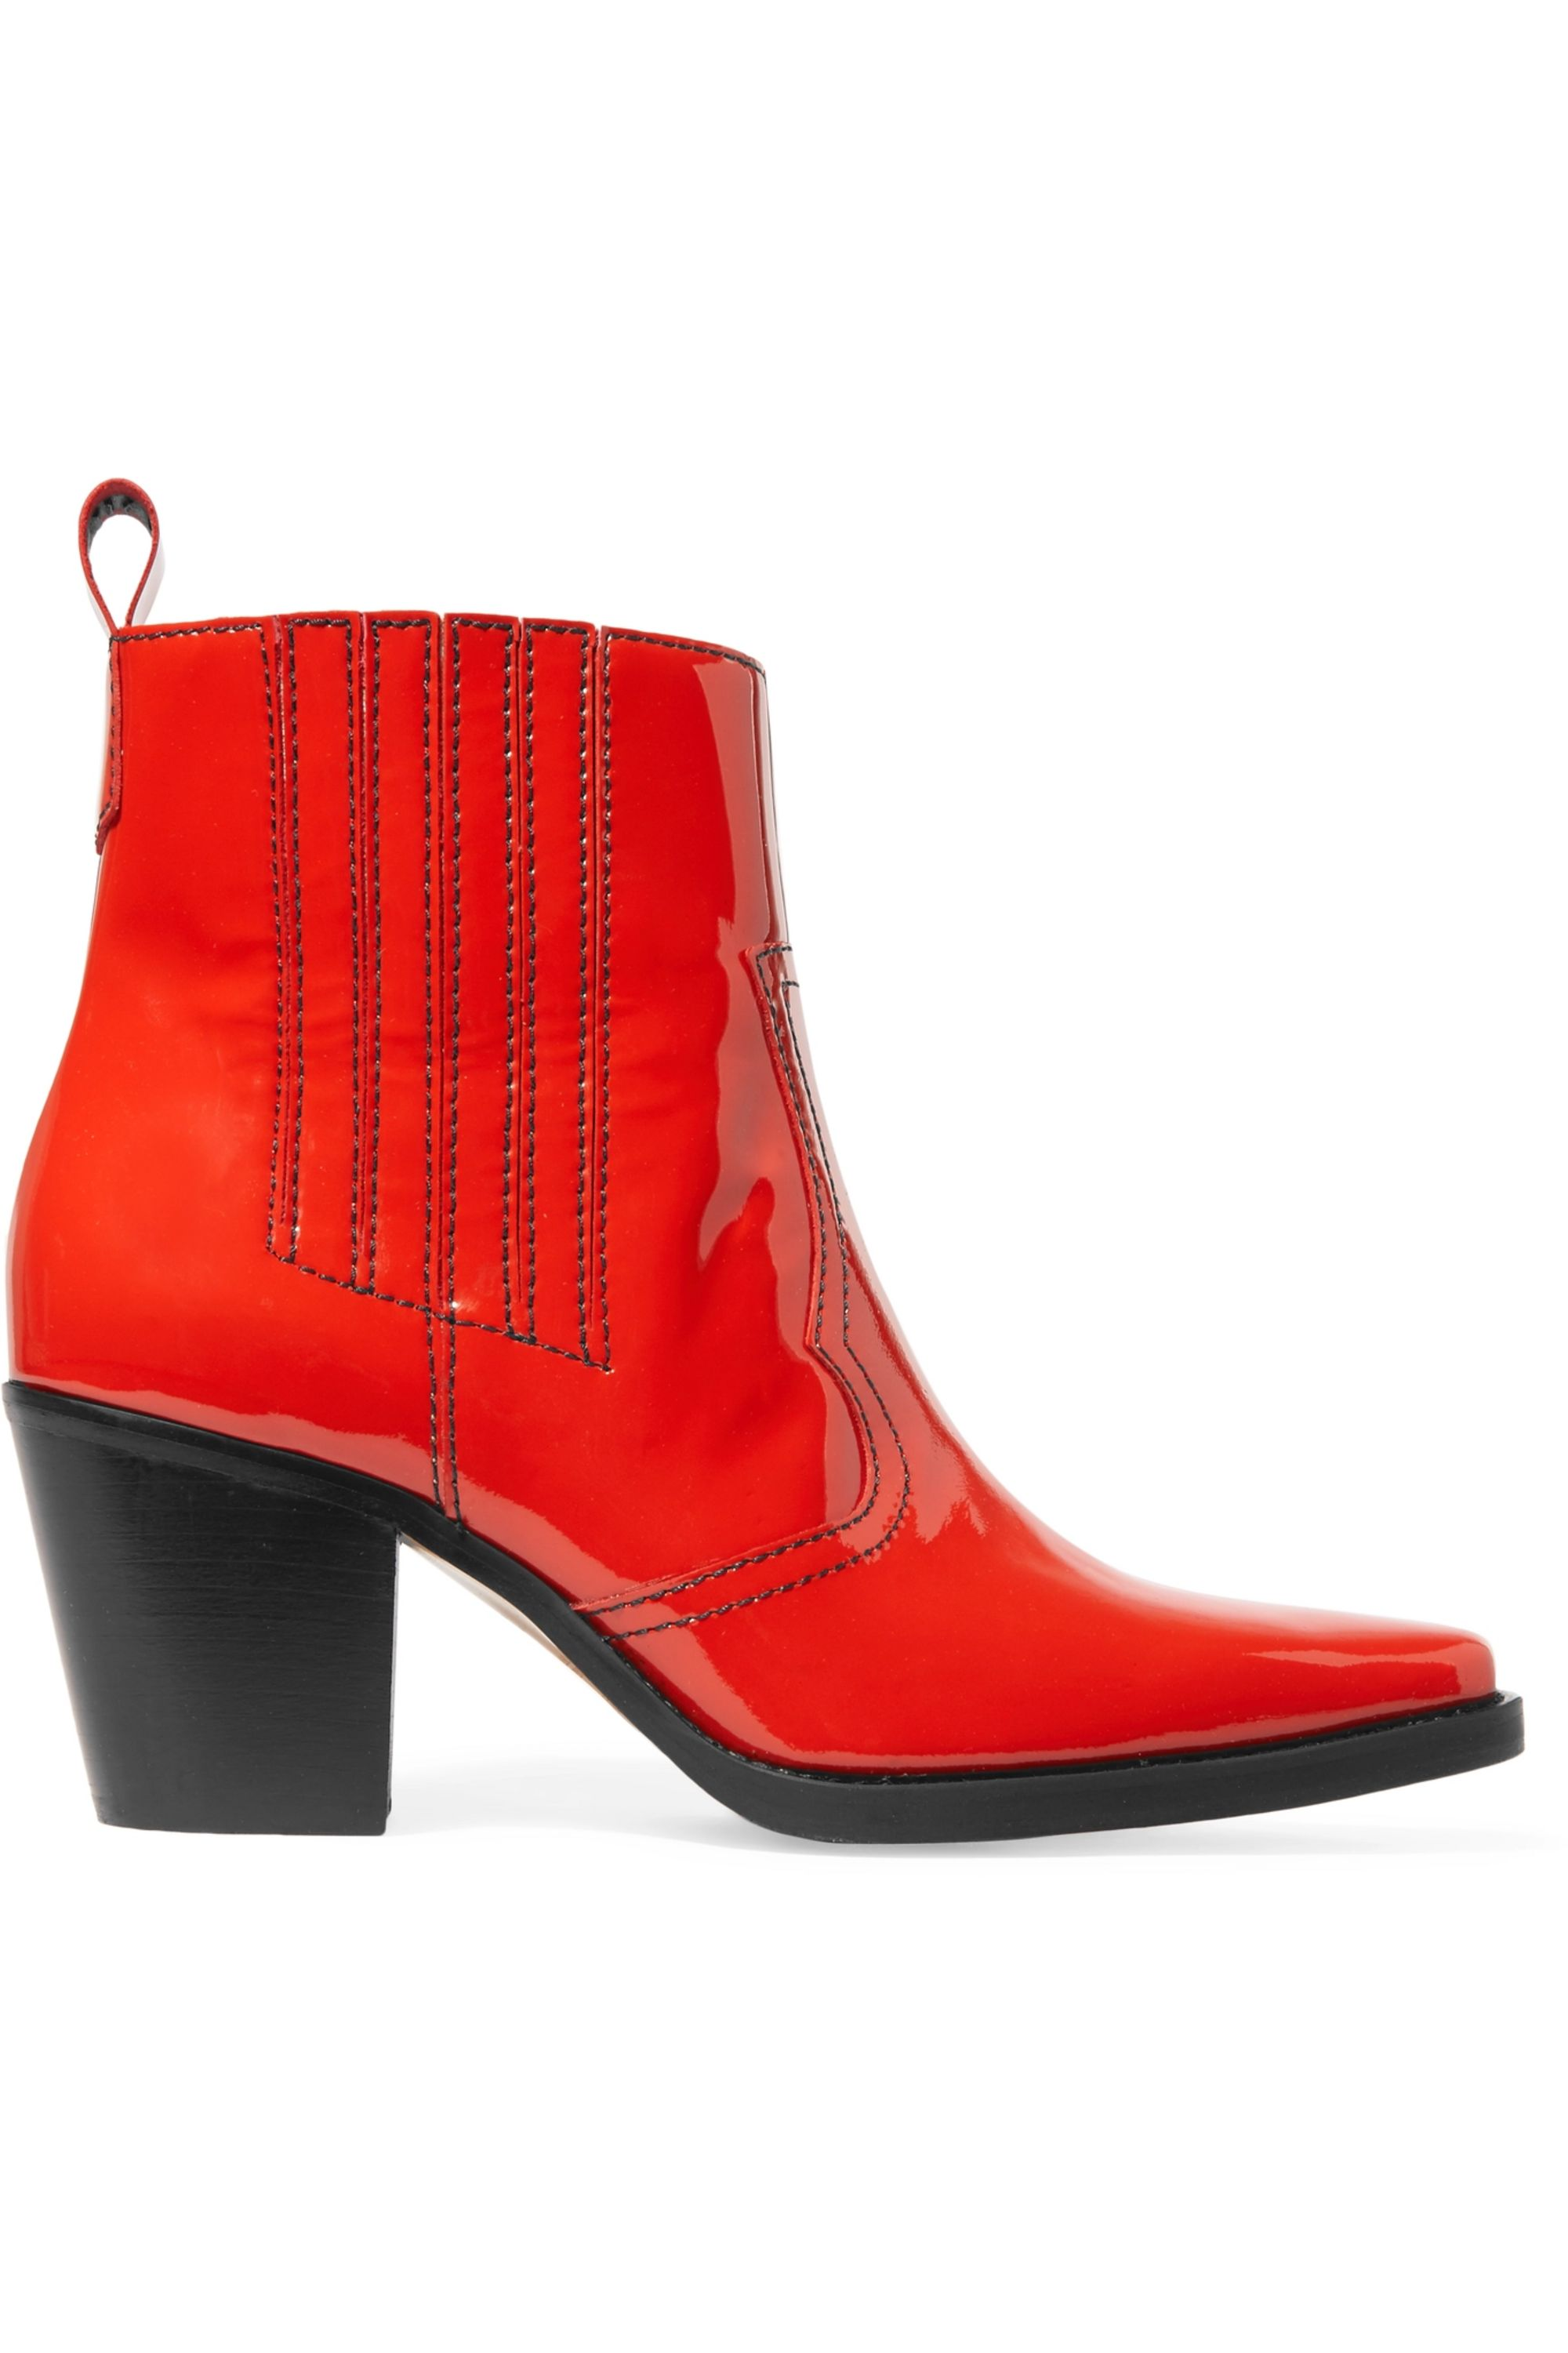 GANNI Callie patent-leather ankle boots